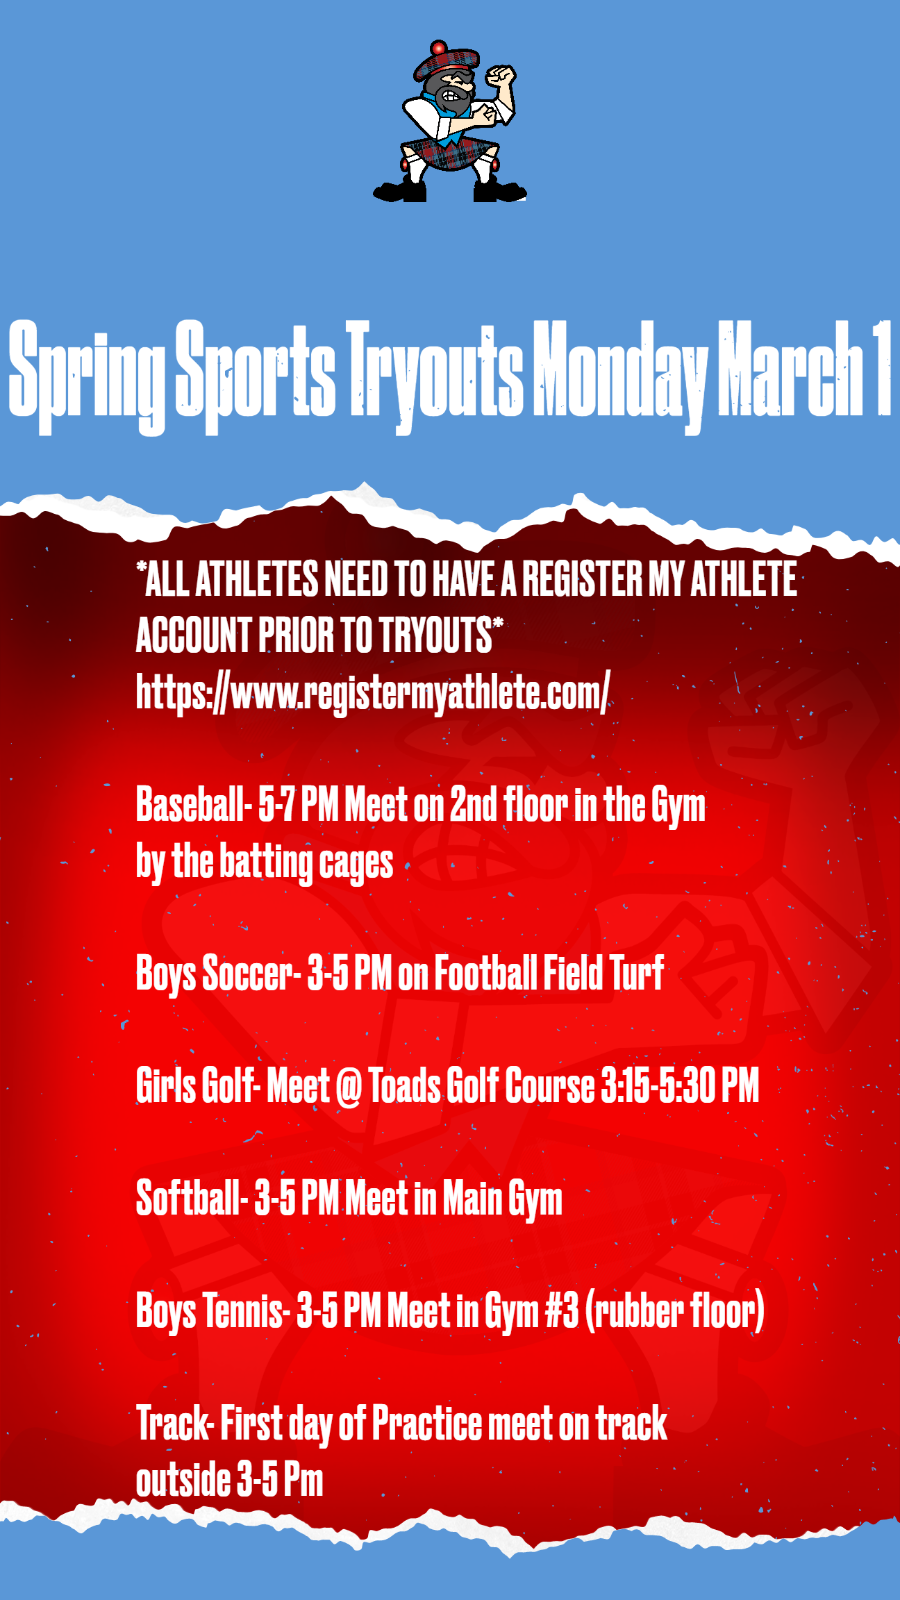 Come out for Spring Sports starting Monday March 1st!